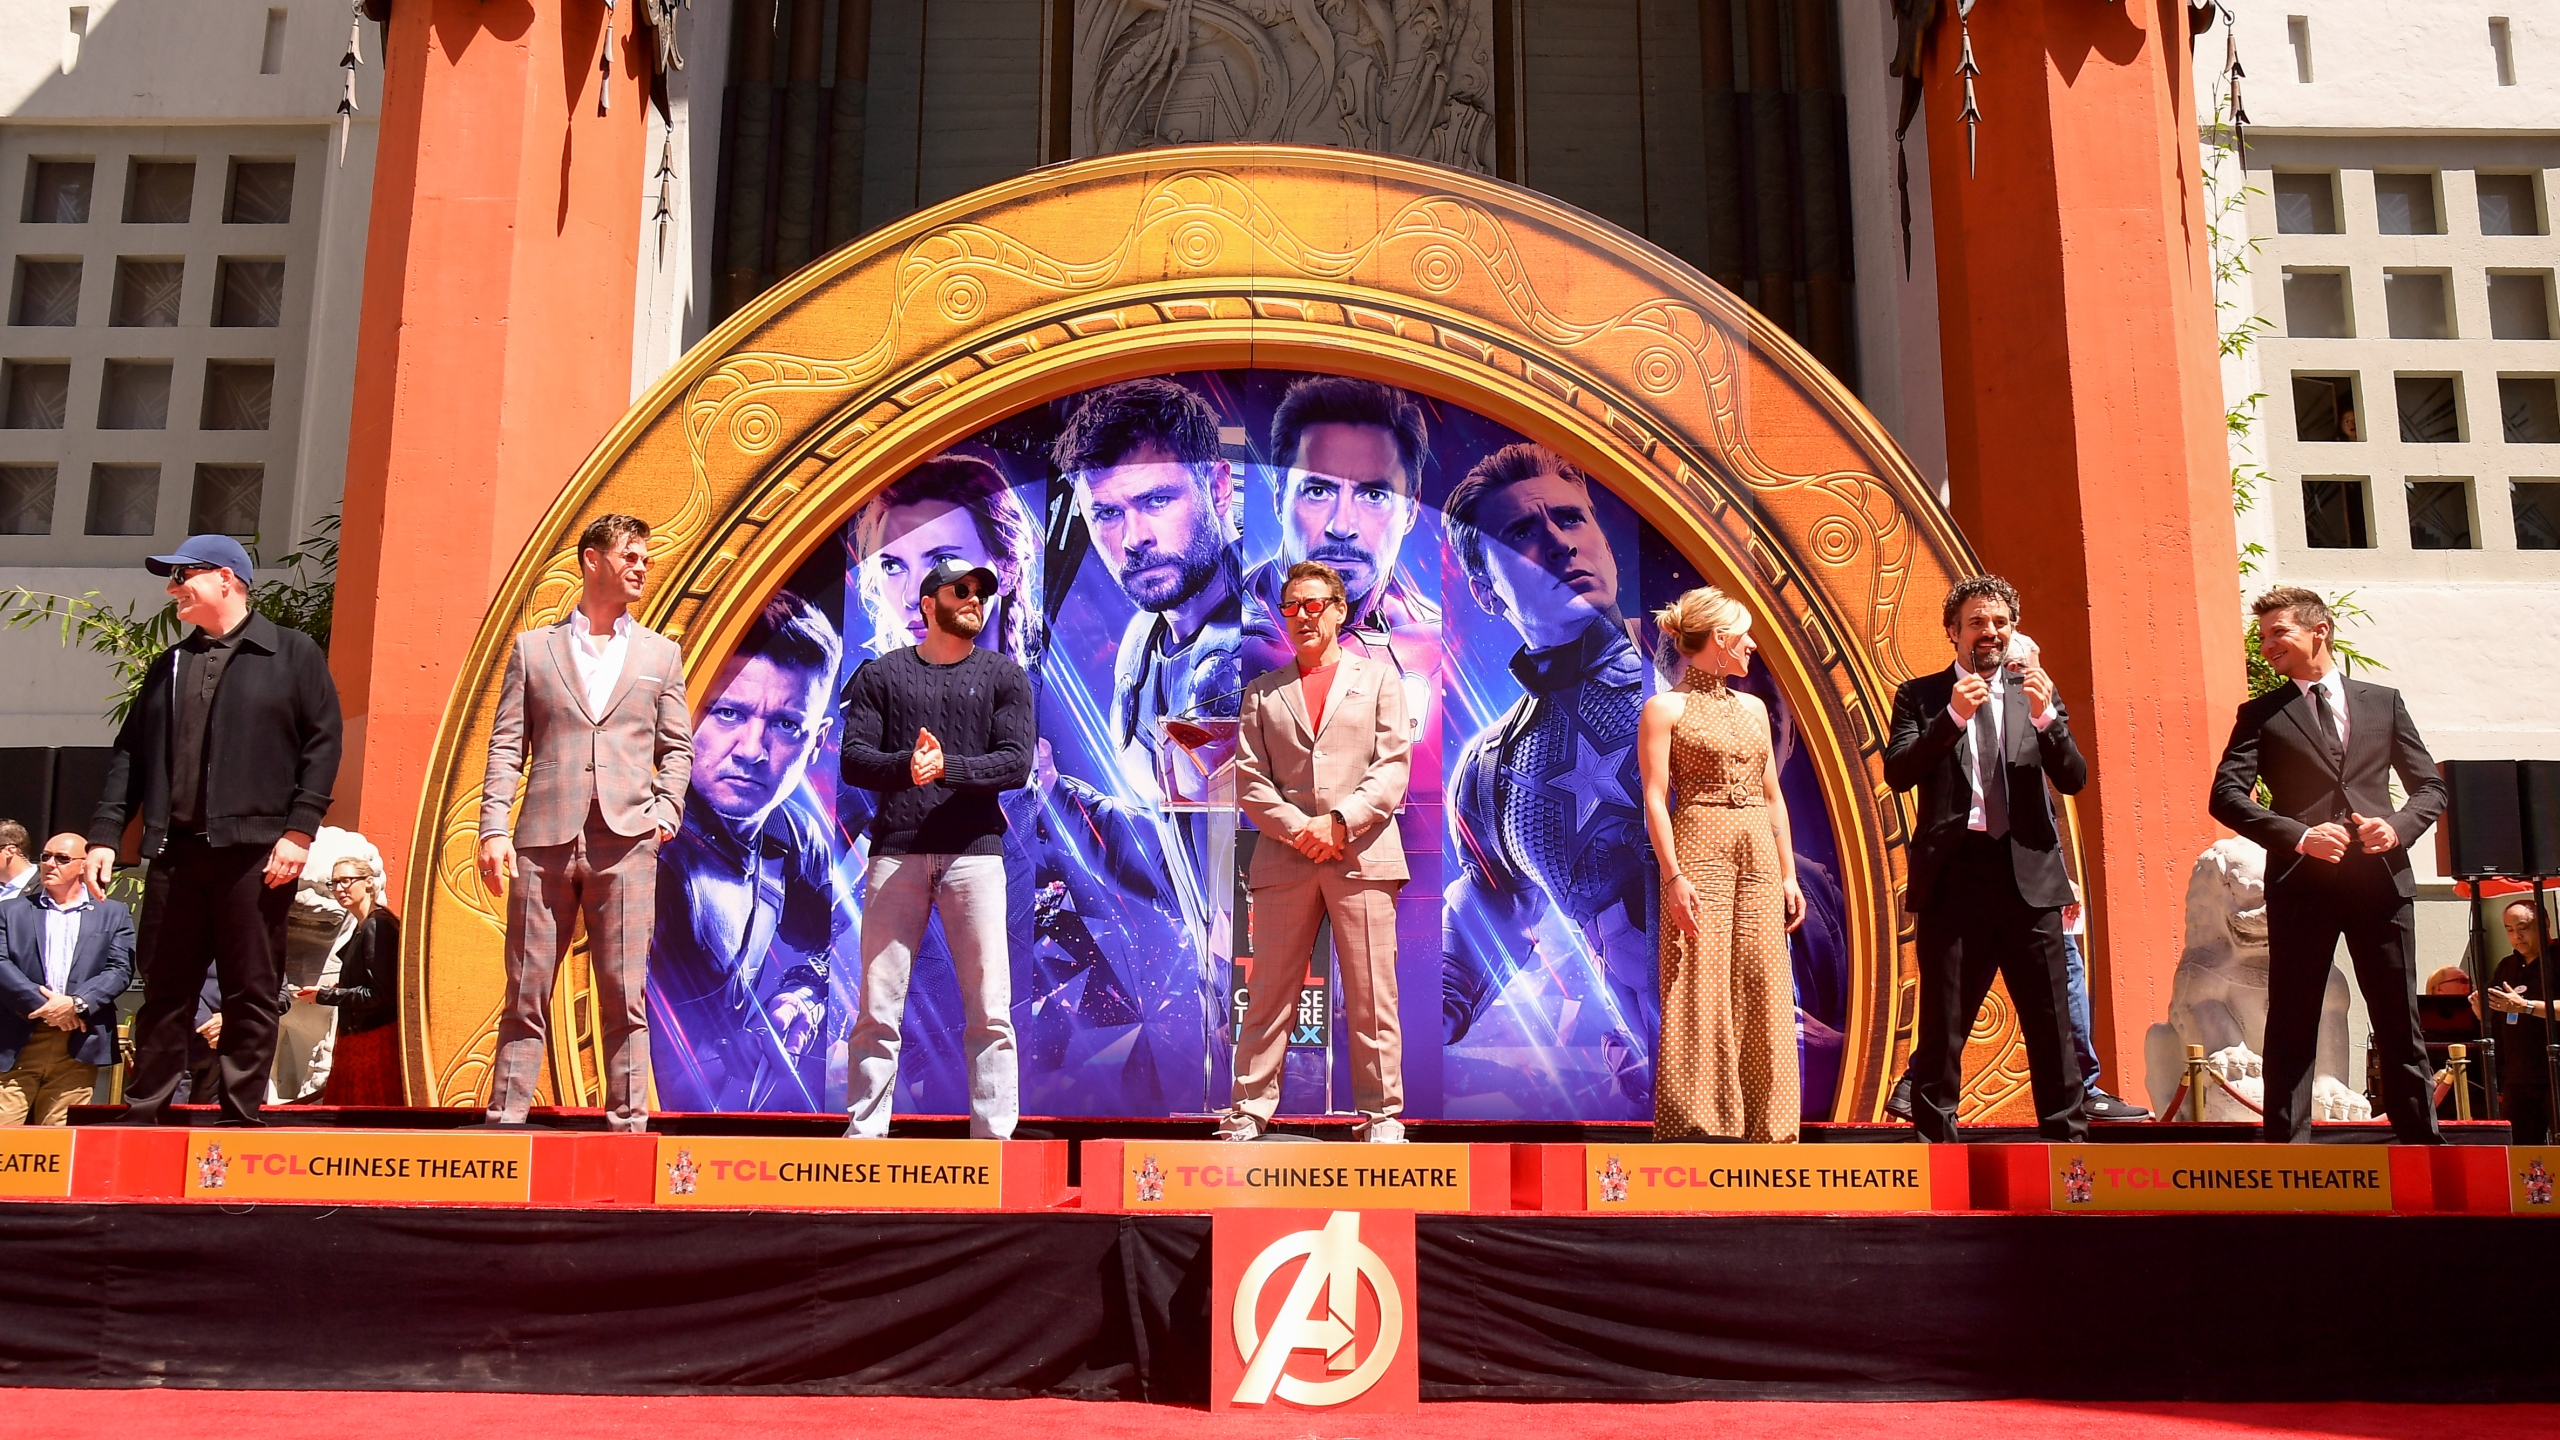 President of Marvel Studios/Producer Kevin Feige, Chris Hemsworth, Chris Evans, Robert Downey Jr., Scarlett Johansson, Mark Ruffalo, and Jeremy Renner attends the Marvel Studios' 'Avengers: Endgame' cast place their hand prints in cement at TCL Chinese Theatre IMAX Forecourt at TCL Chinese Theatre IMAX on April 23, 2019 in Hollywood. (Credit: Matt Winkelmeyer/Getty Images)